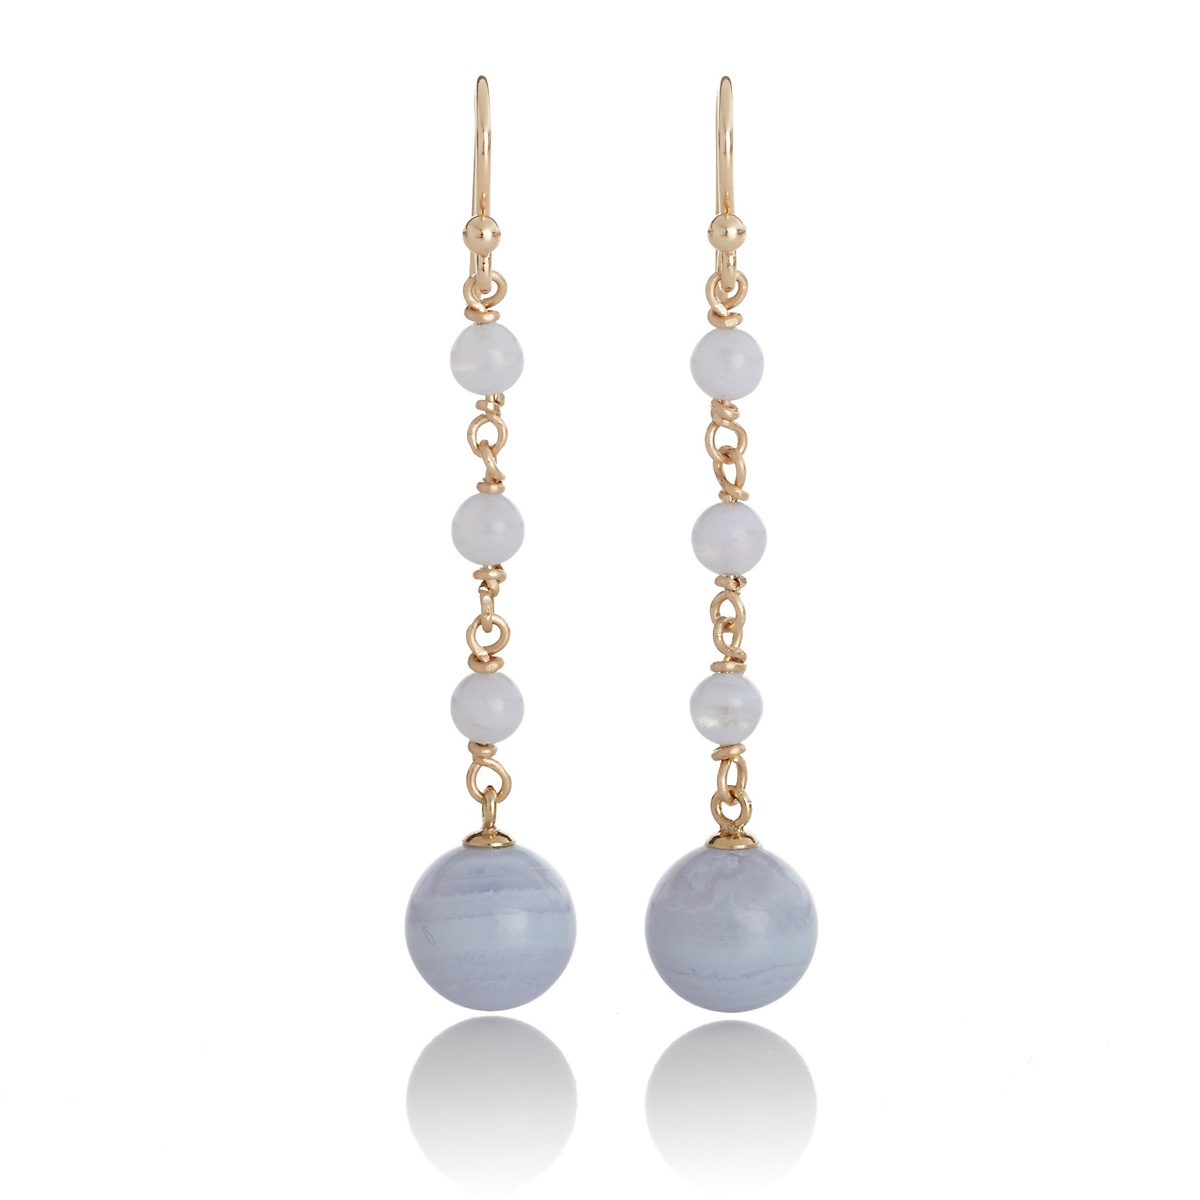 Gump's Blue Lace Agate Bead Long Drop Earrings